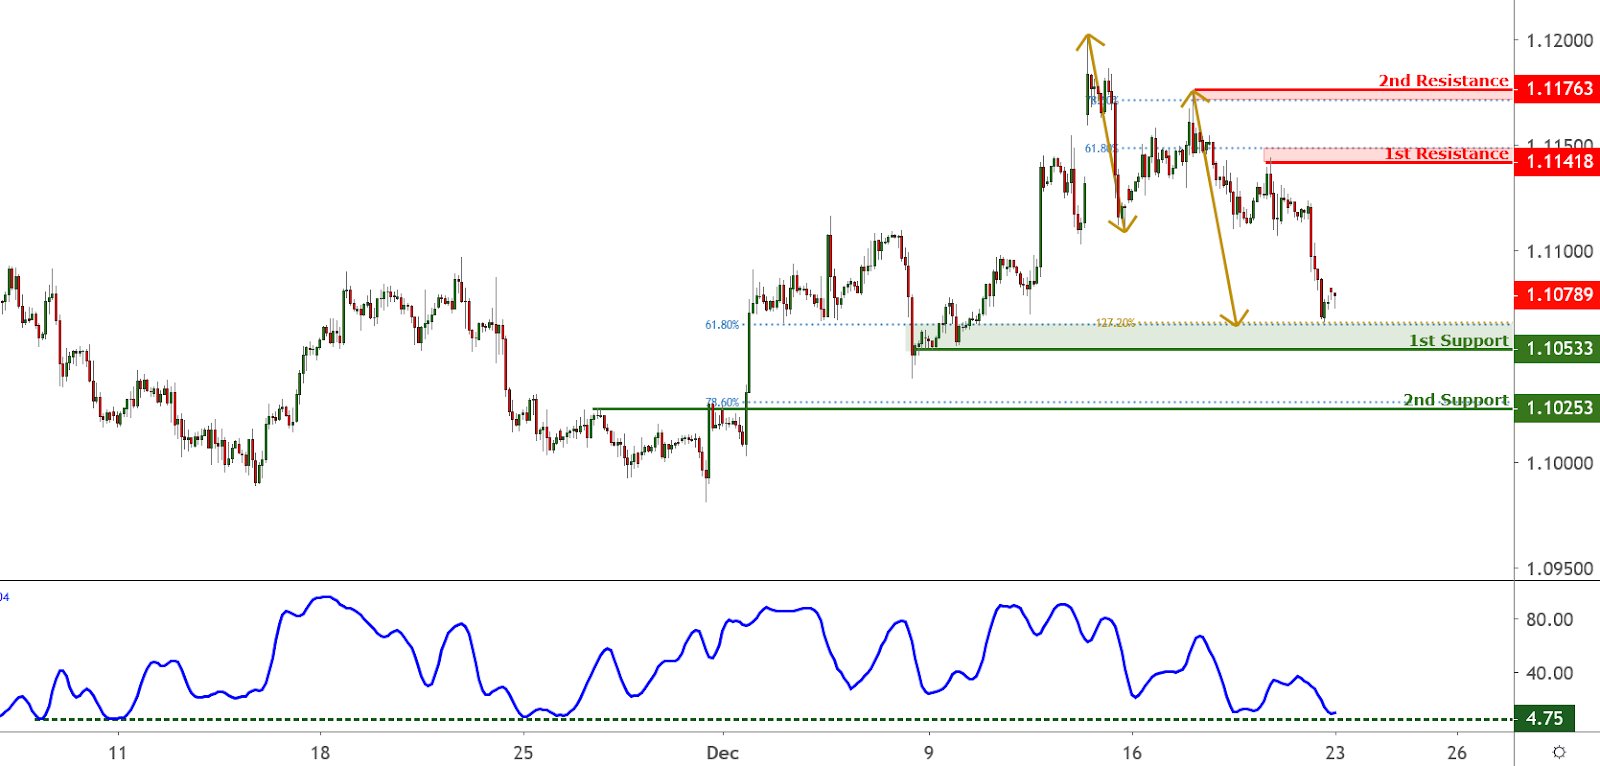 EURUSD Chart, Source: TradingView.com